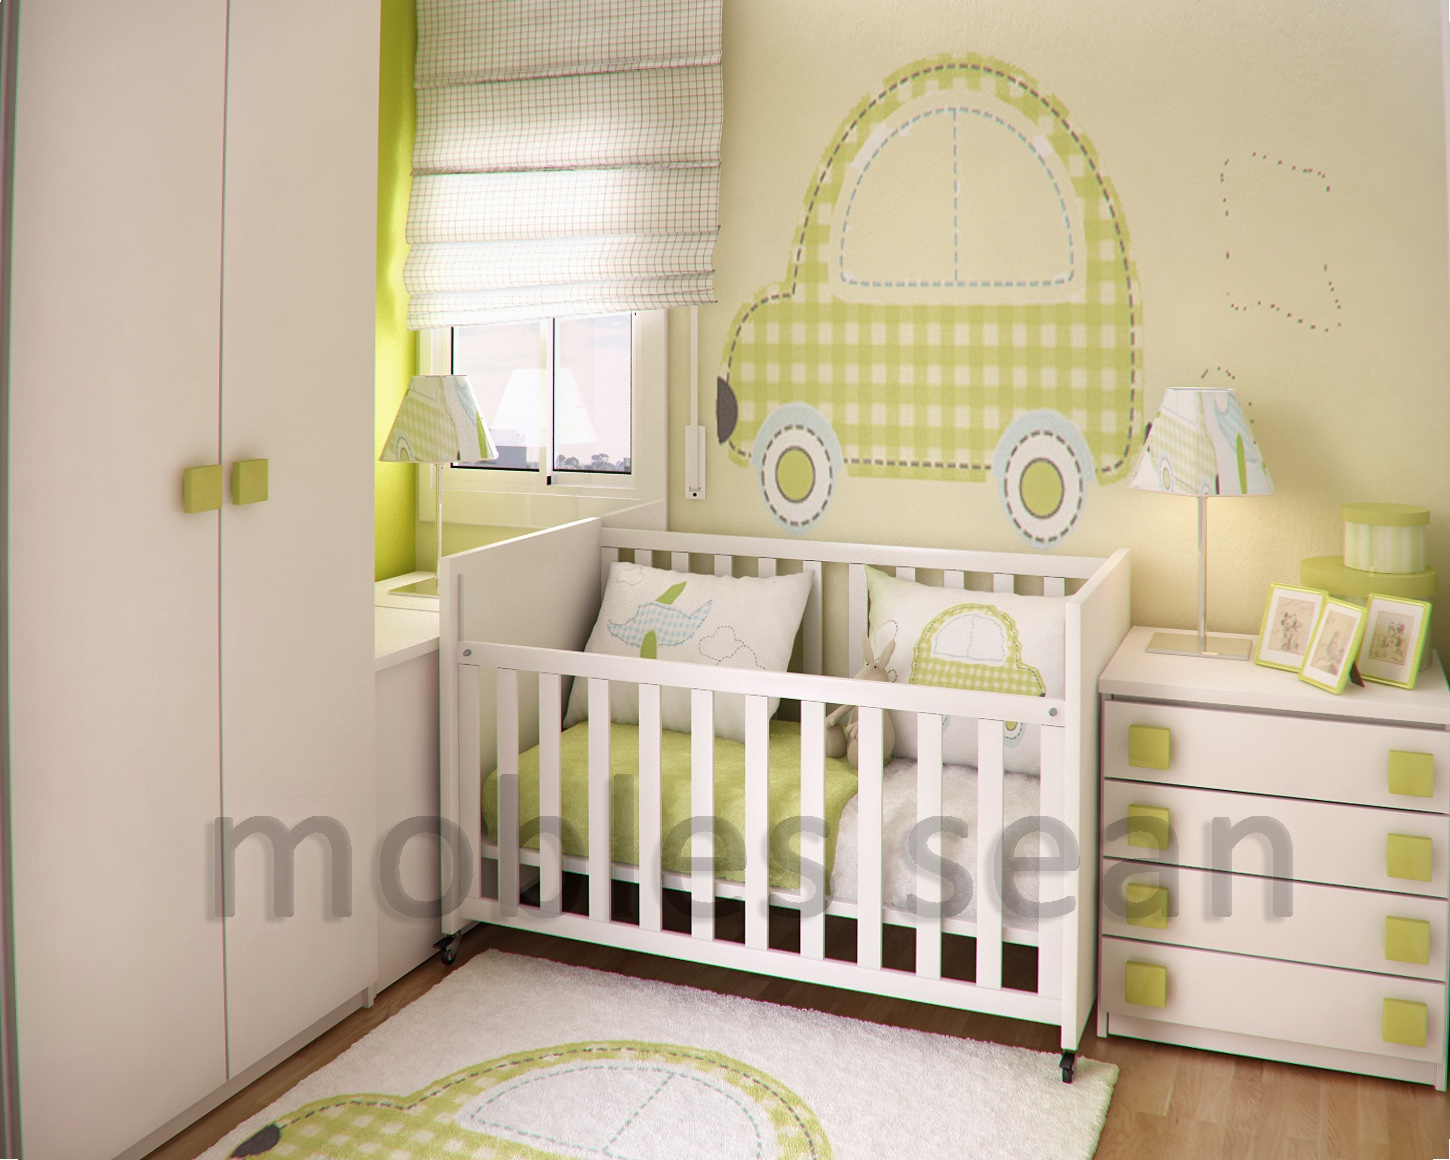 Space Saving Designs For Small Kids Rooms